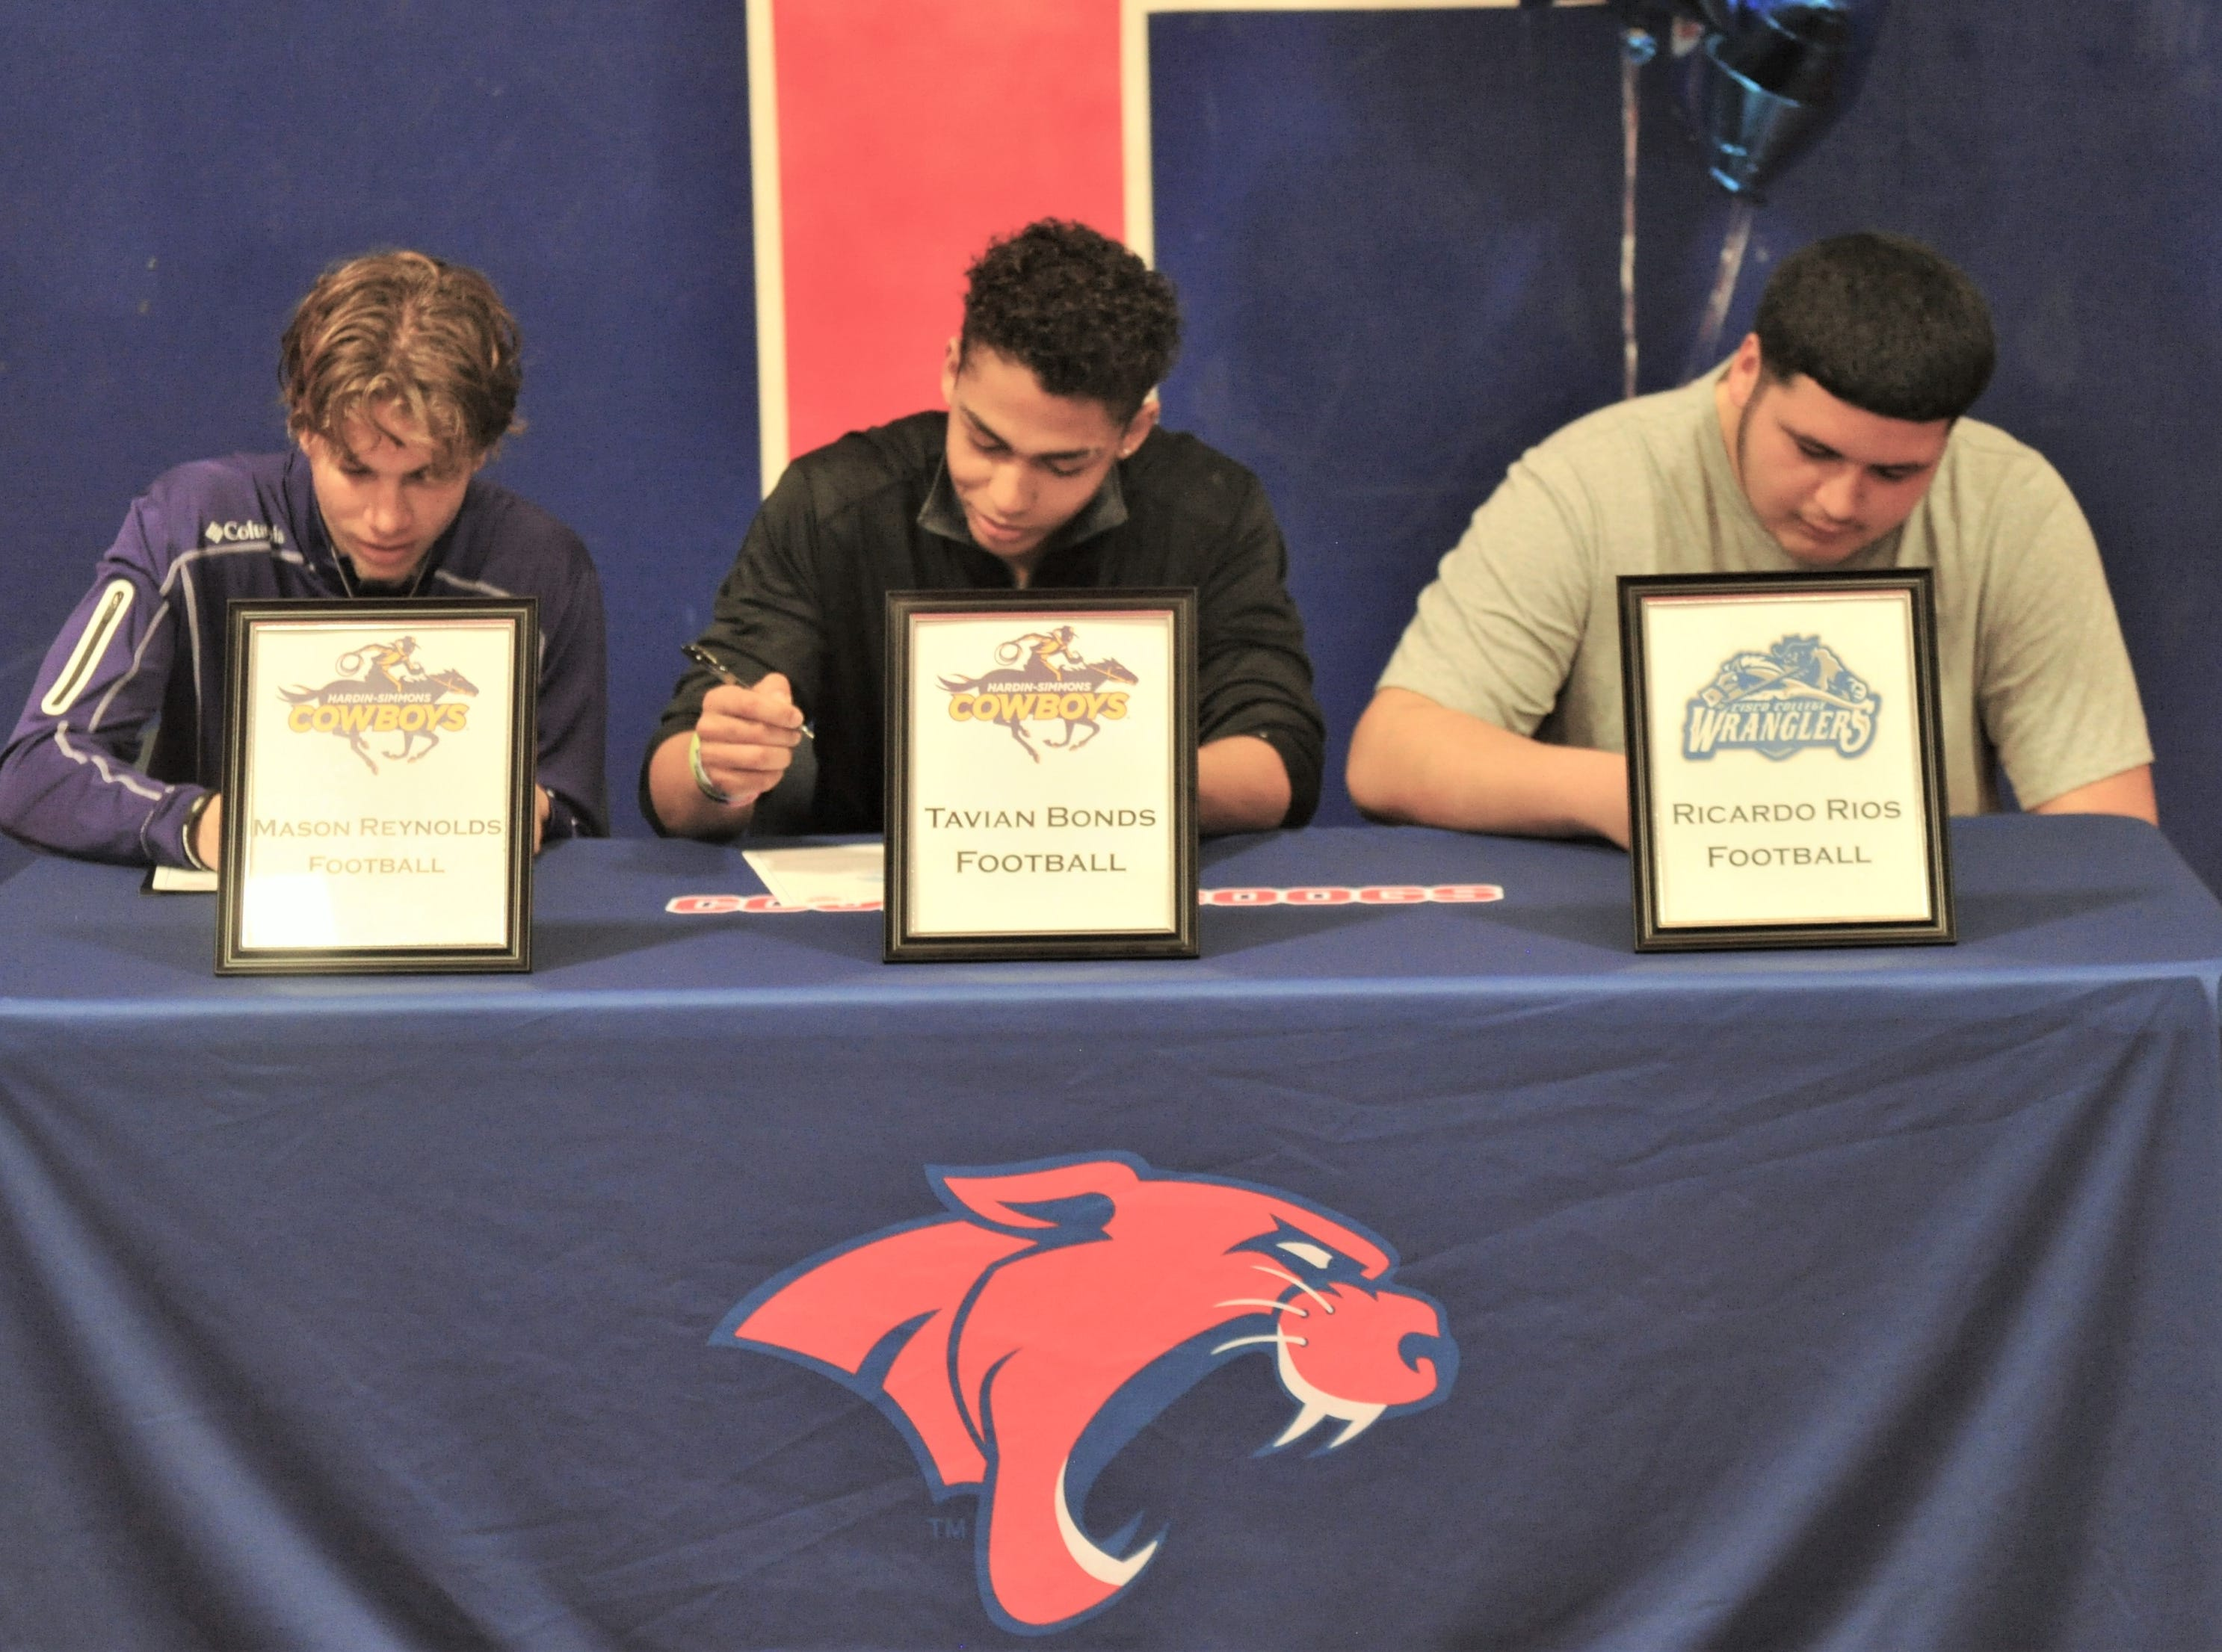 Cooper receiver Mason Reynolds, left, linebacker Tavian Bonds, center, and offensive lineman Ricardo Rios were part of a signing ceremony at the Cooper weight room on Wednesday, Feb. 6, 2019. Reynolds and Bonds will play at Hardin-Simmons next season, while Rios will play at Cisco College.